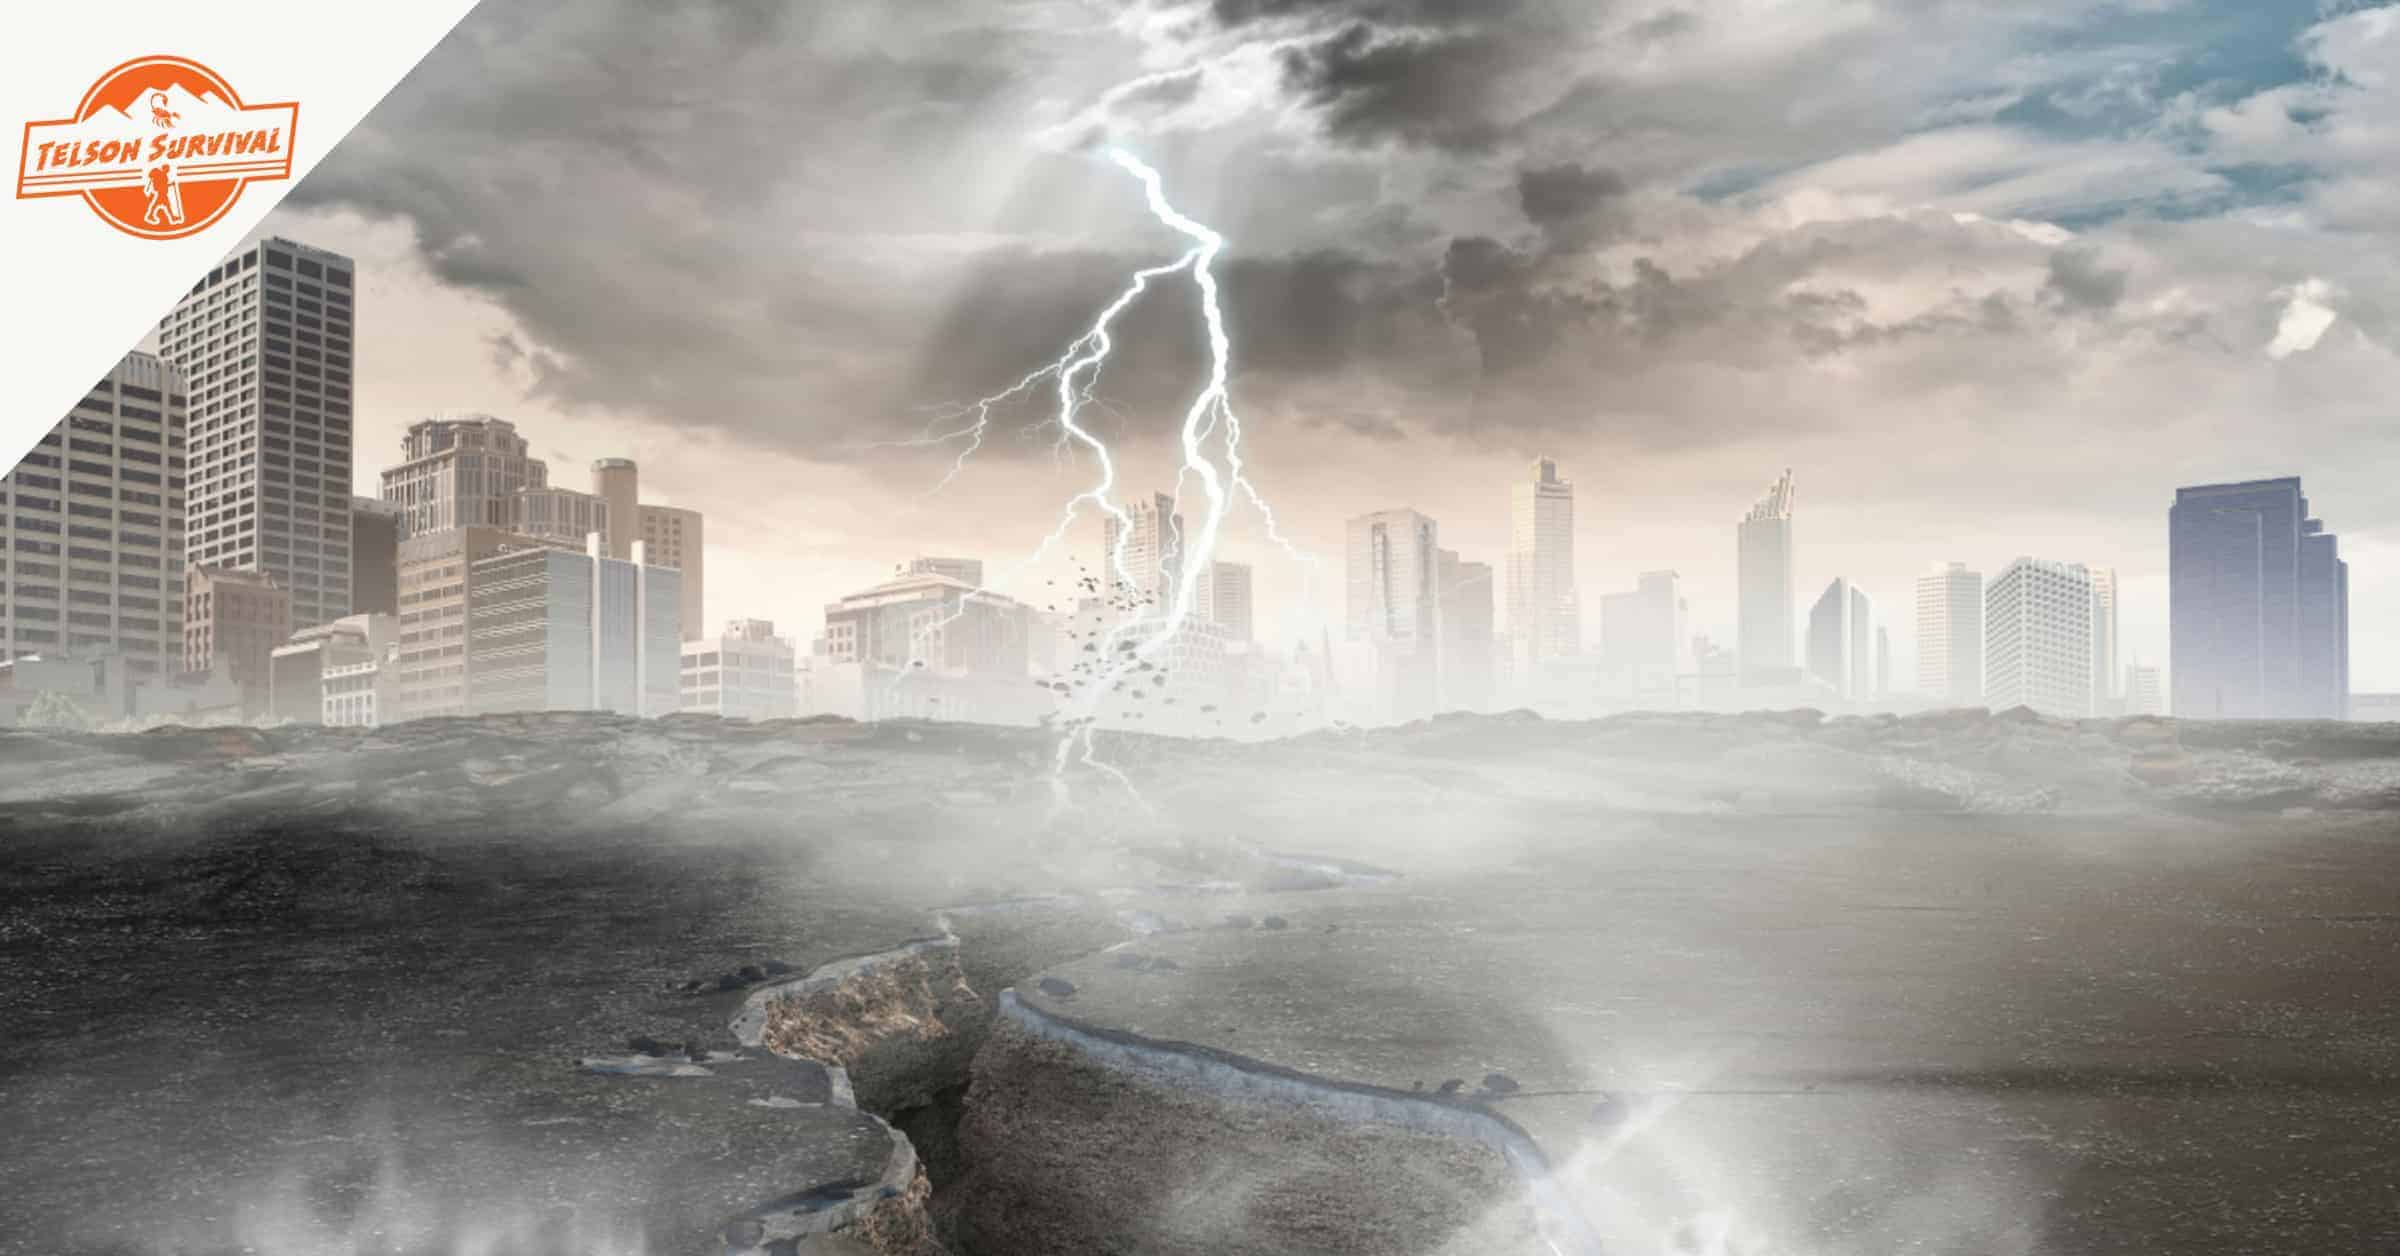 Earthquake and thunderstorm ravaging a city